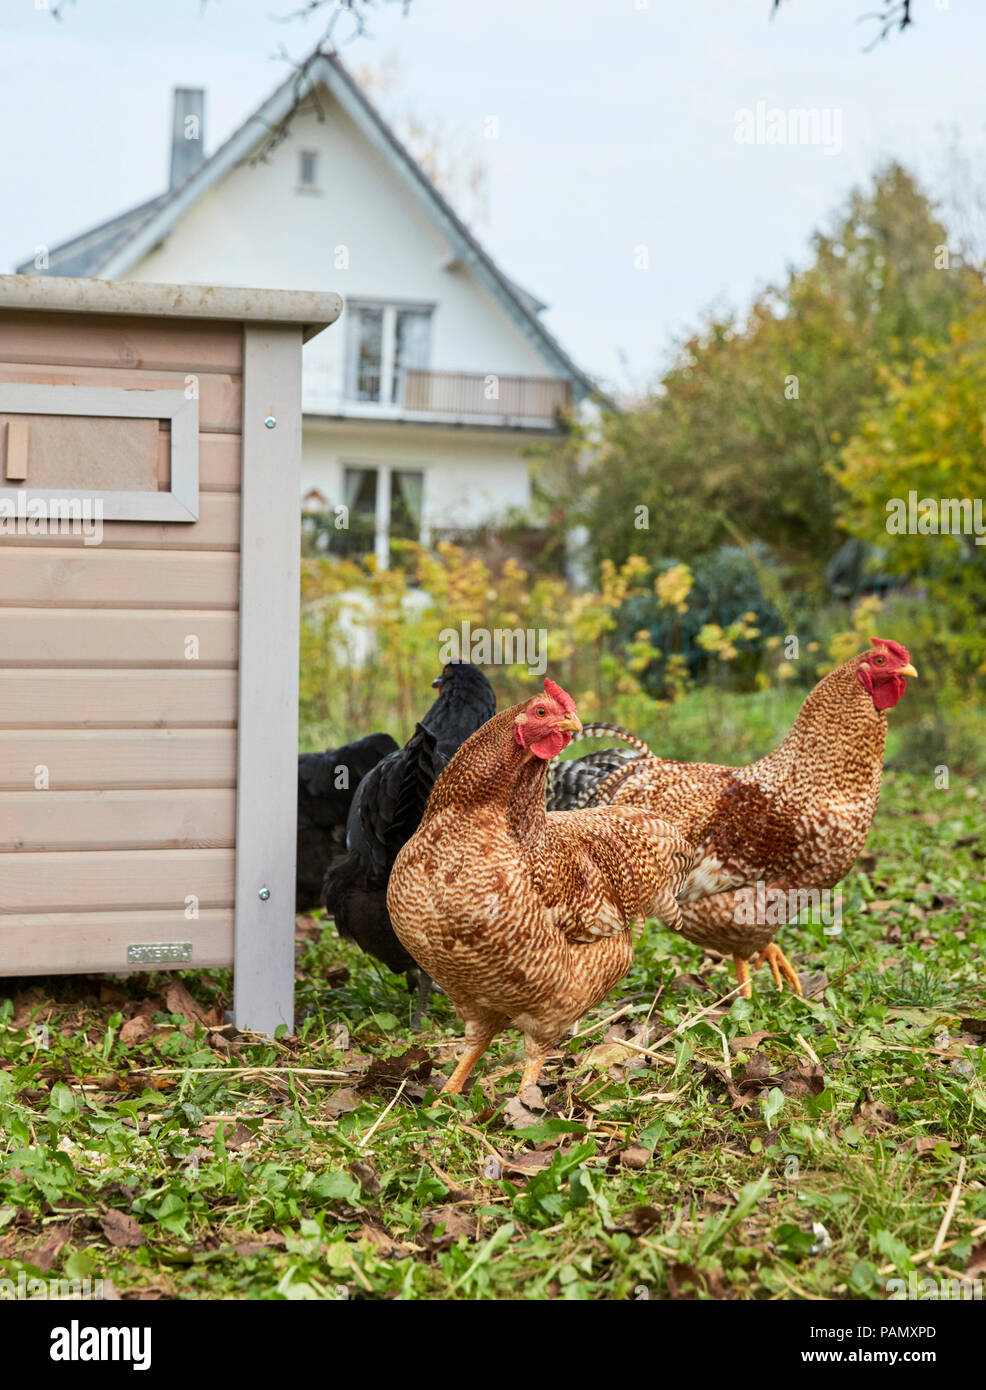 Domestic chicken. Hens in front of hen house in a garden. Germany. - Stock Image